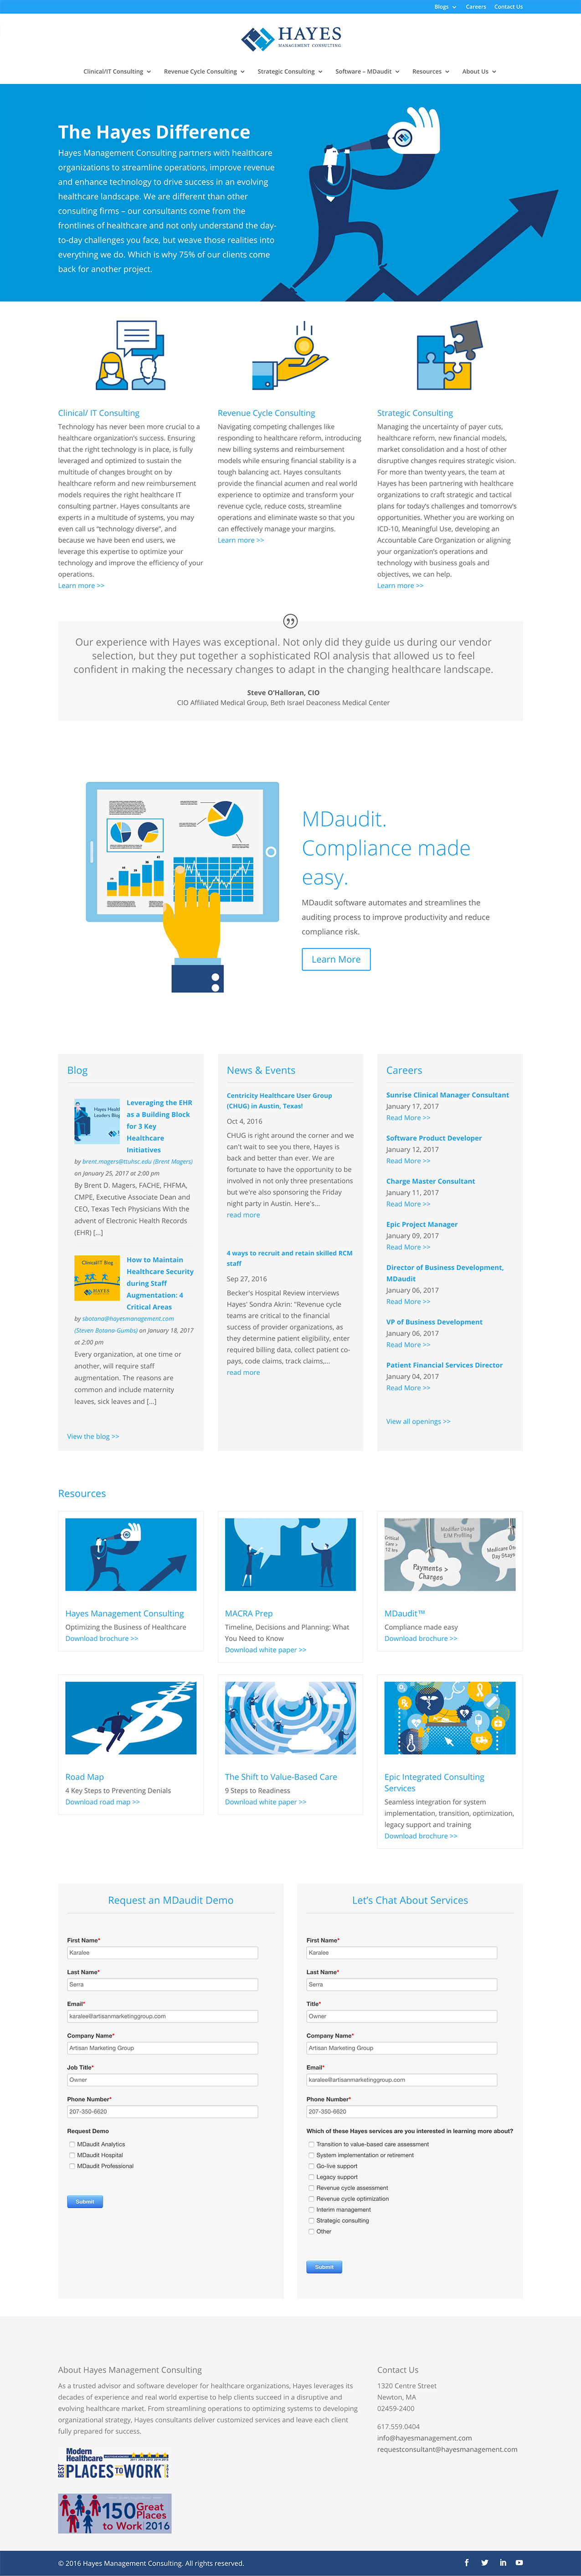 Hayes Management Consulting - Website Design